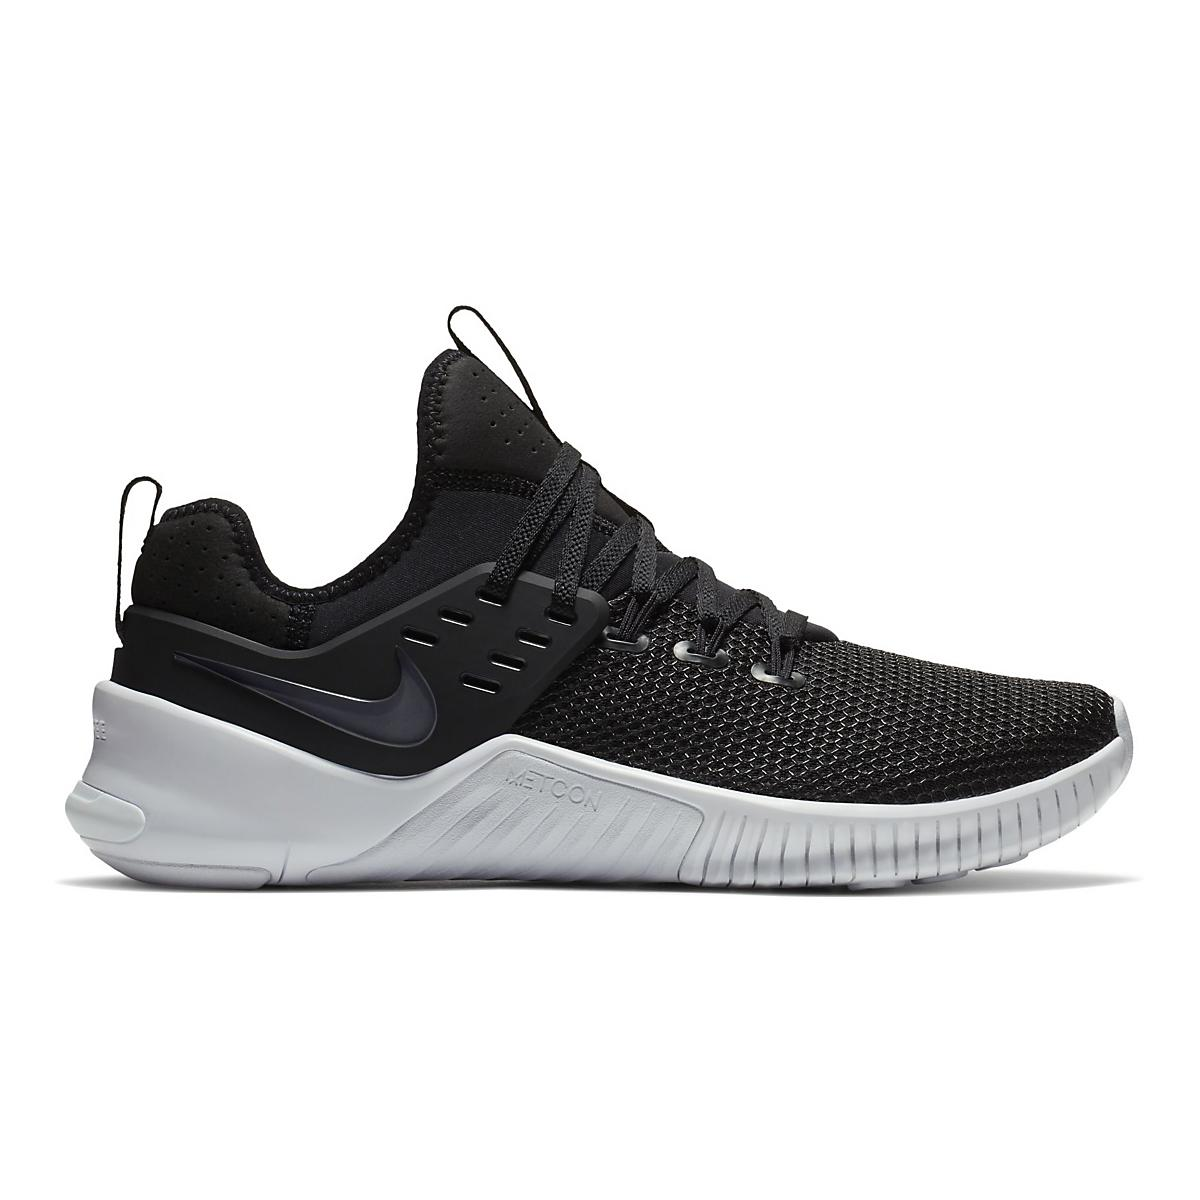 8539a55ff97e ... new style nike free x metcon training shoes for men from road runner  sports 0a8bc 9432c